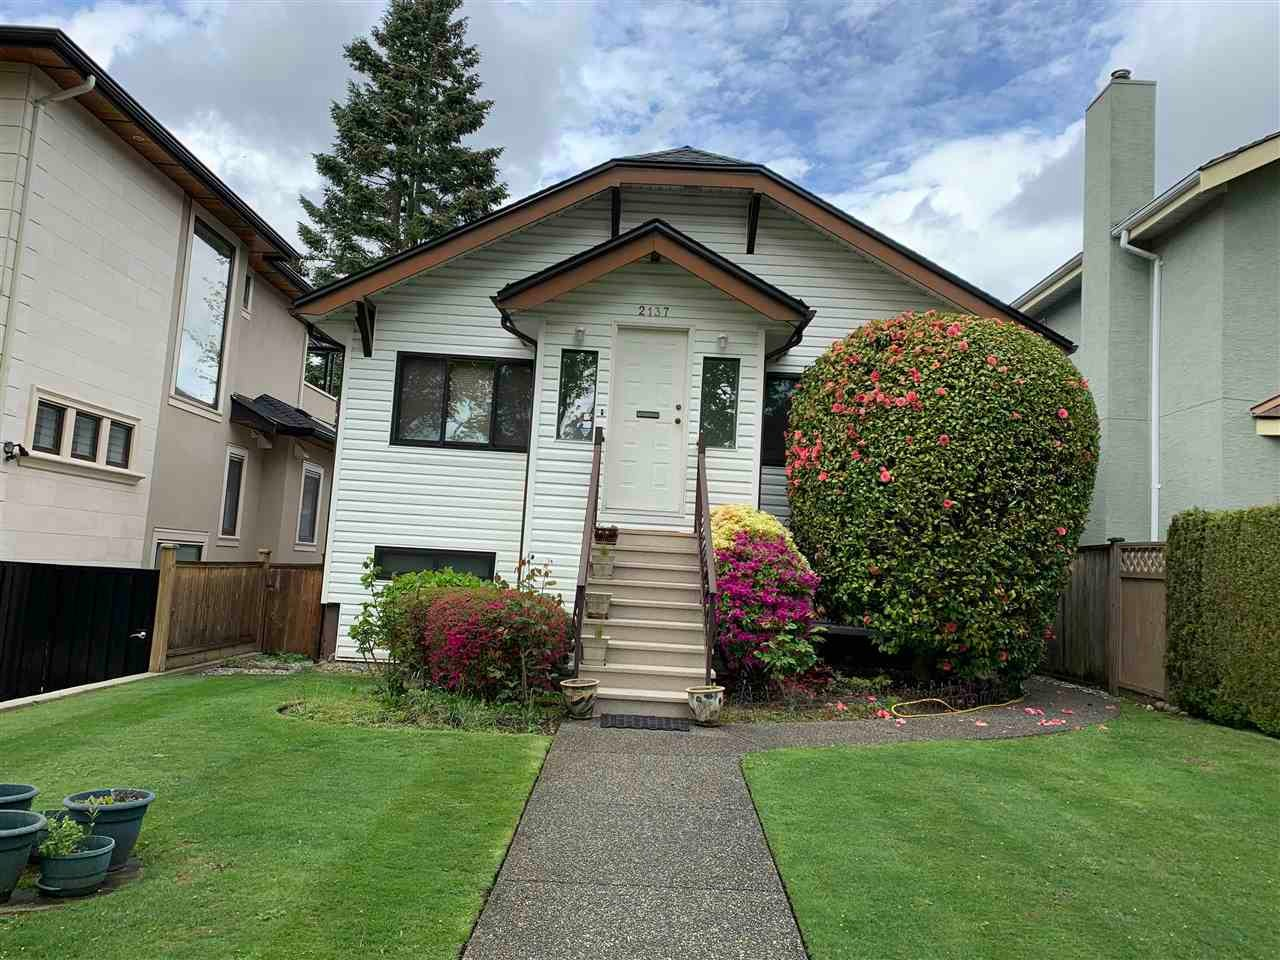 2137 W 46TH AVENUE - Kerrisdale House/Single Family for sale, 3 Bedrooms (R2575736)